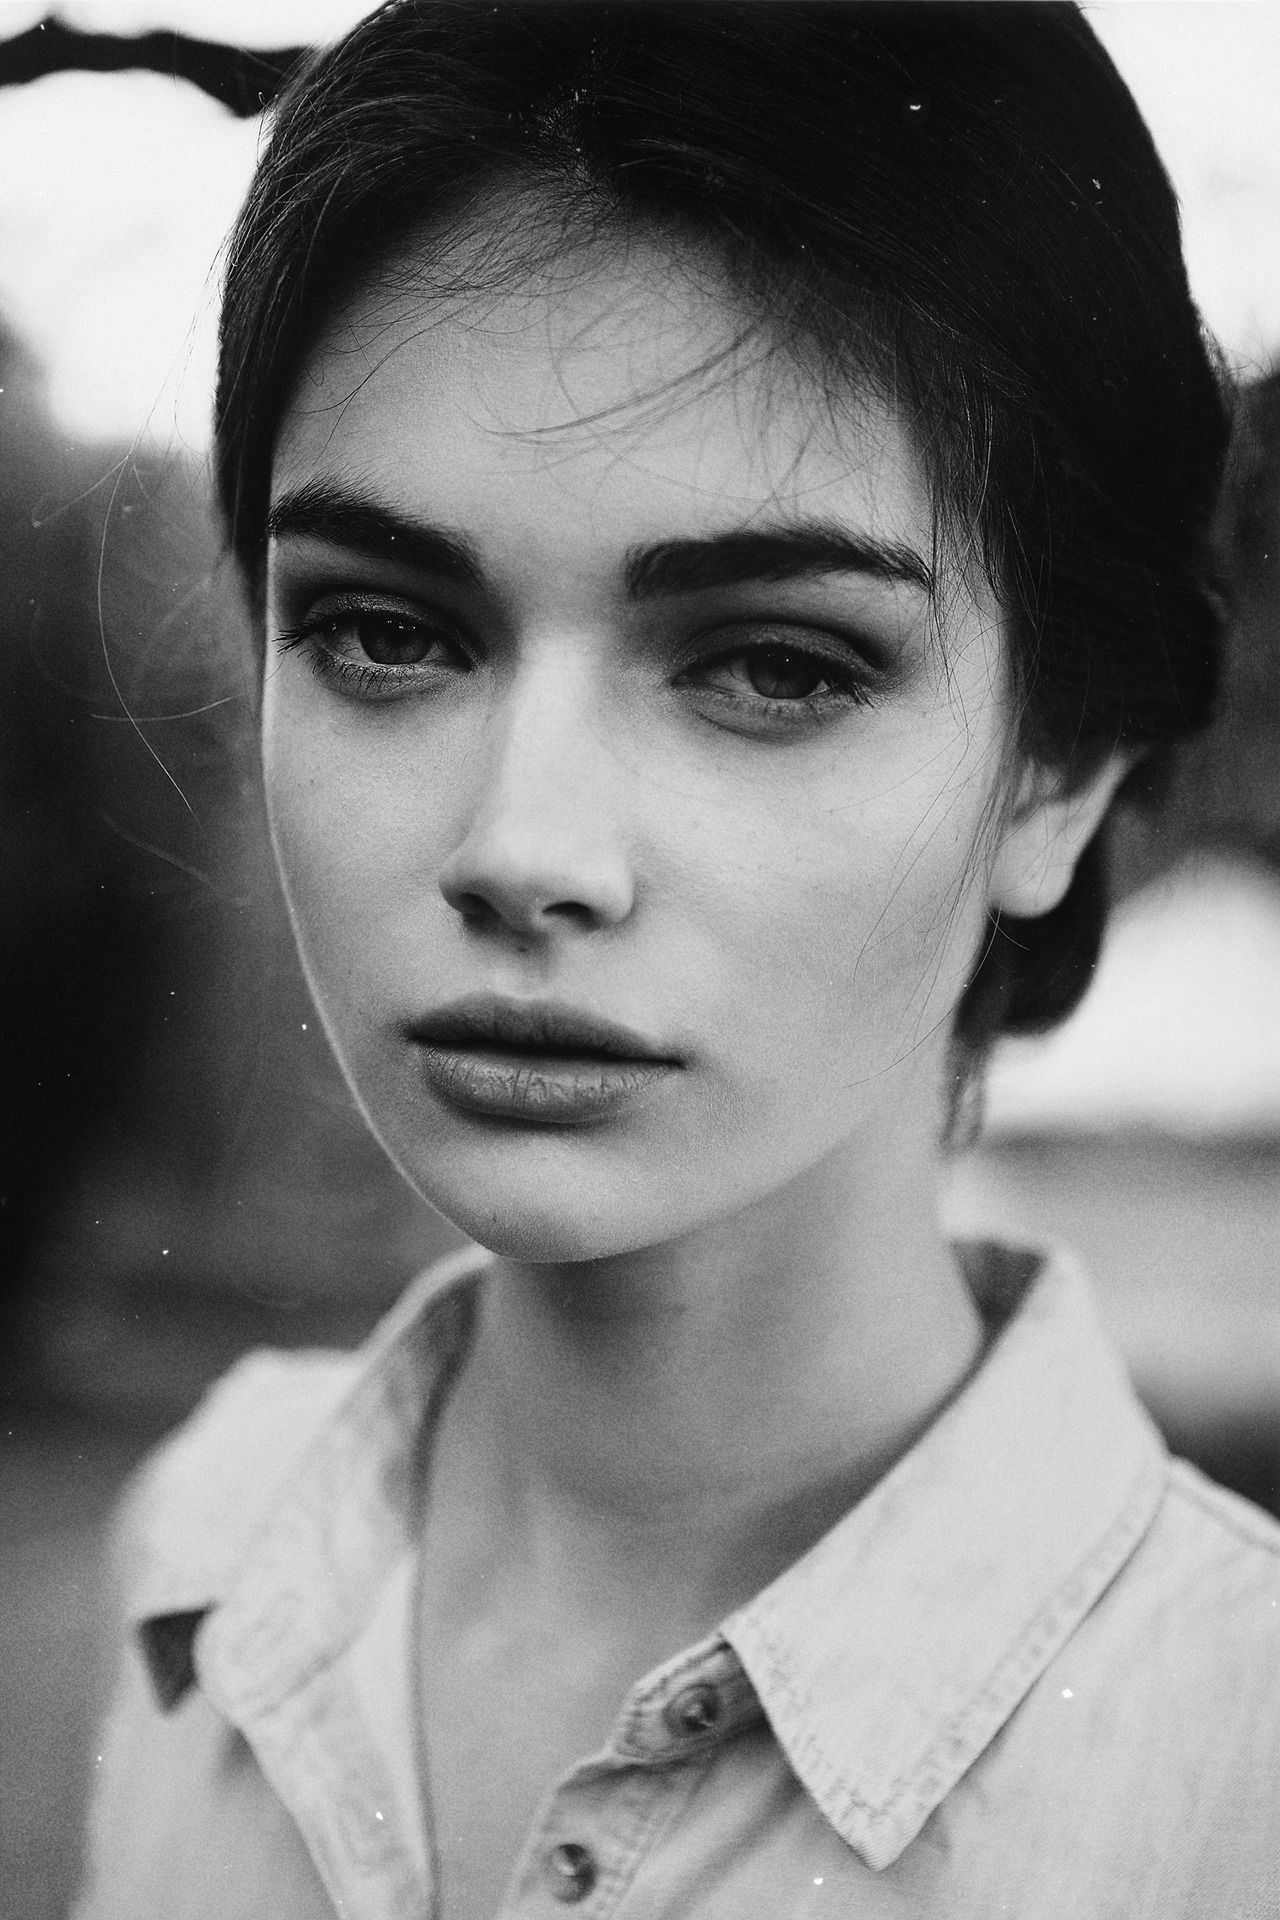 Brows   Beauty  Pinterest  Brows Eyebrow and Dark hair